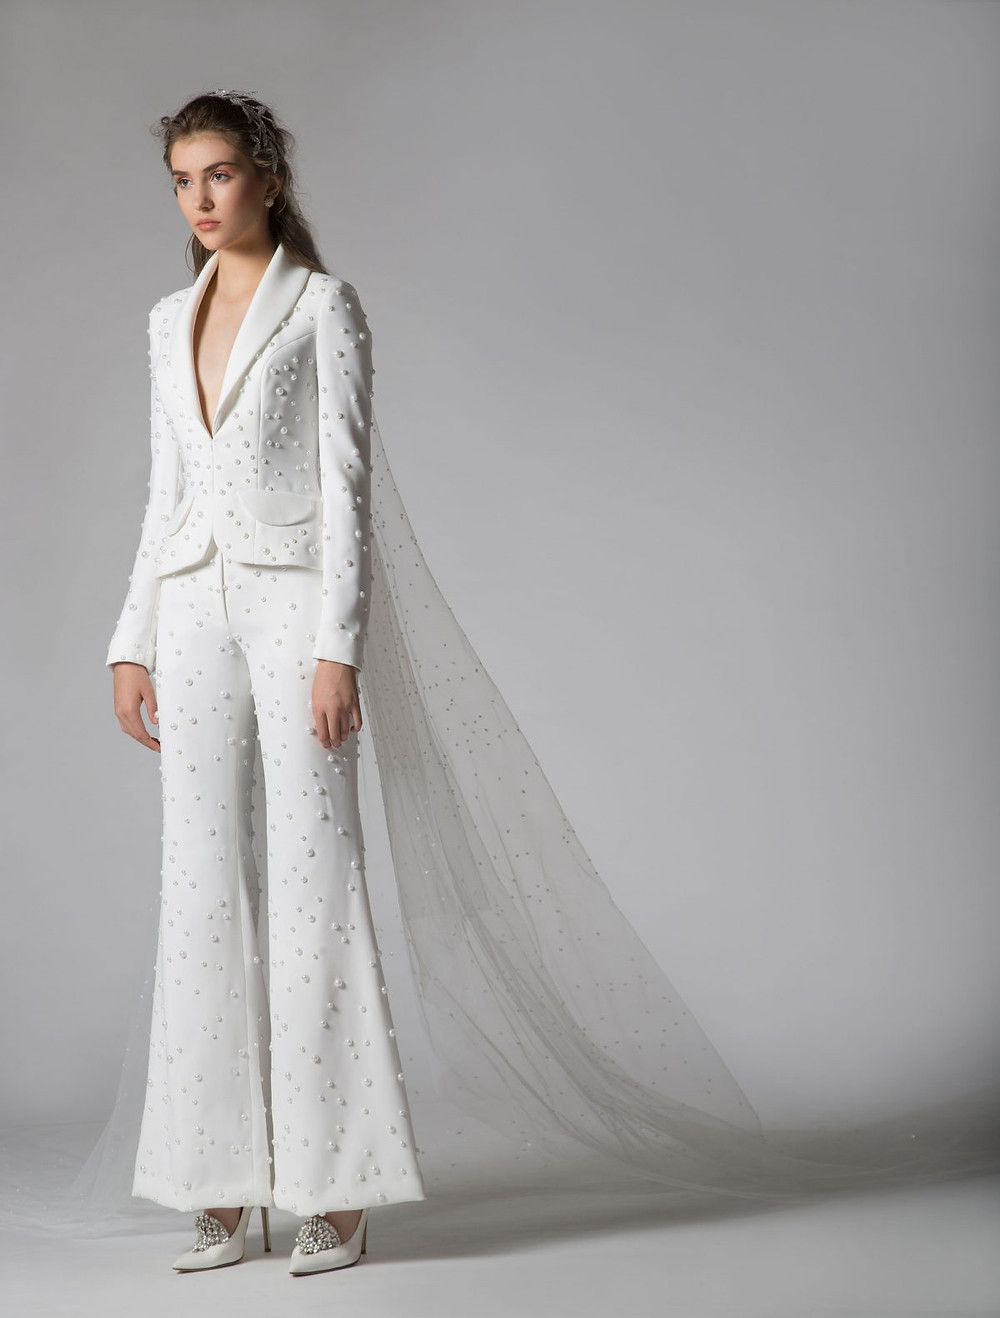 A Georges Hobeika wedding jumpsuit or pantsuit with long sleeves and pearls